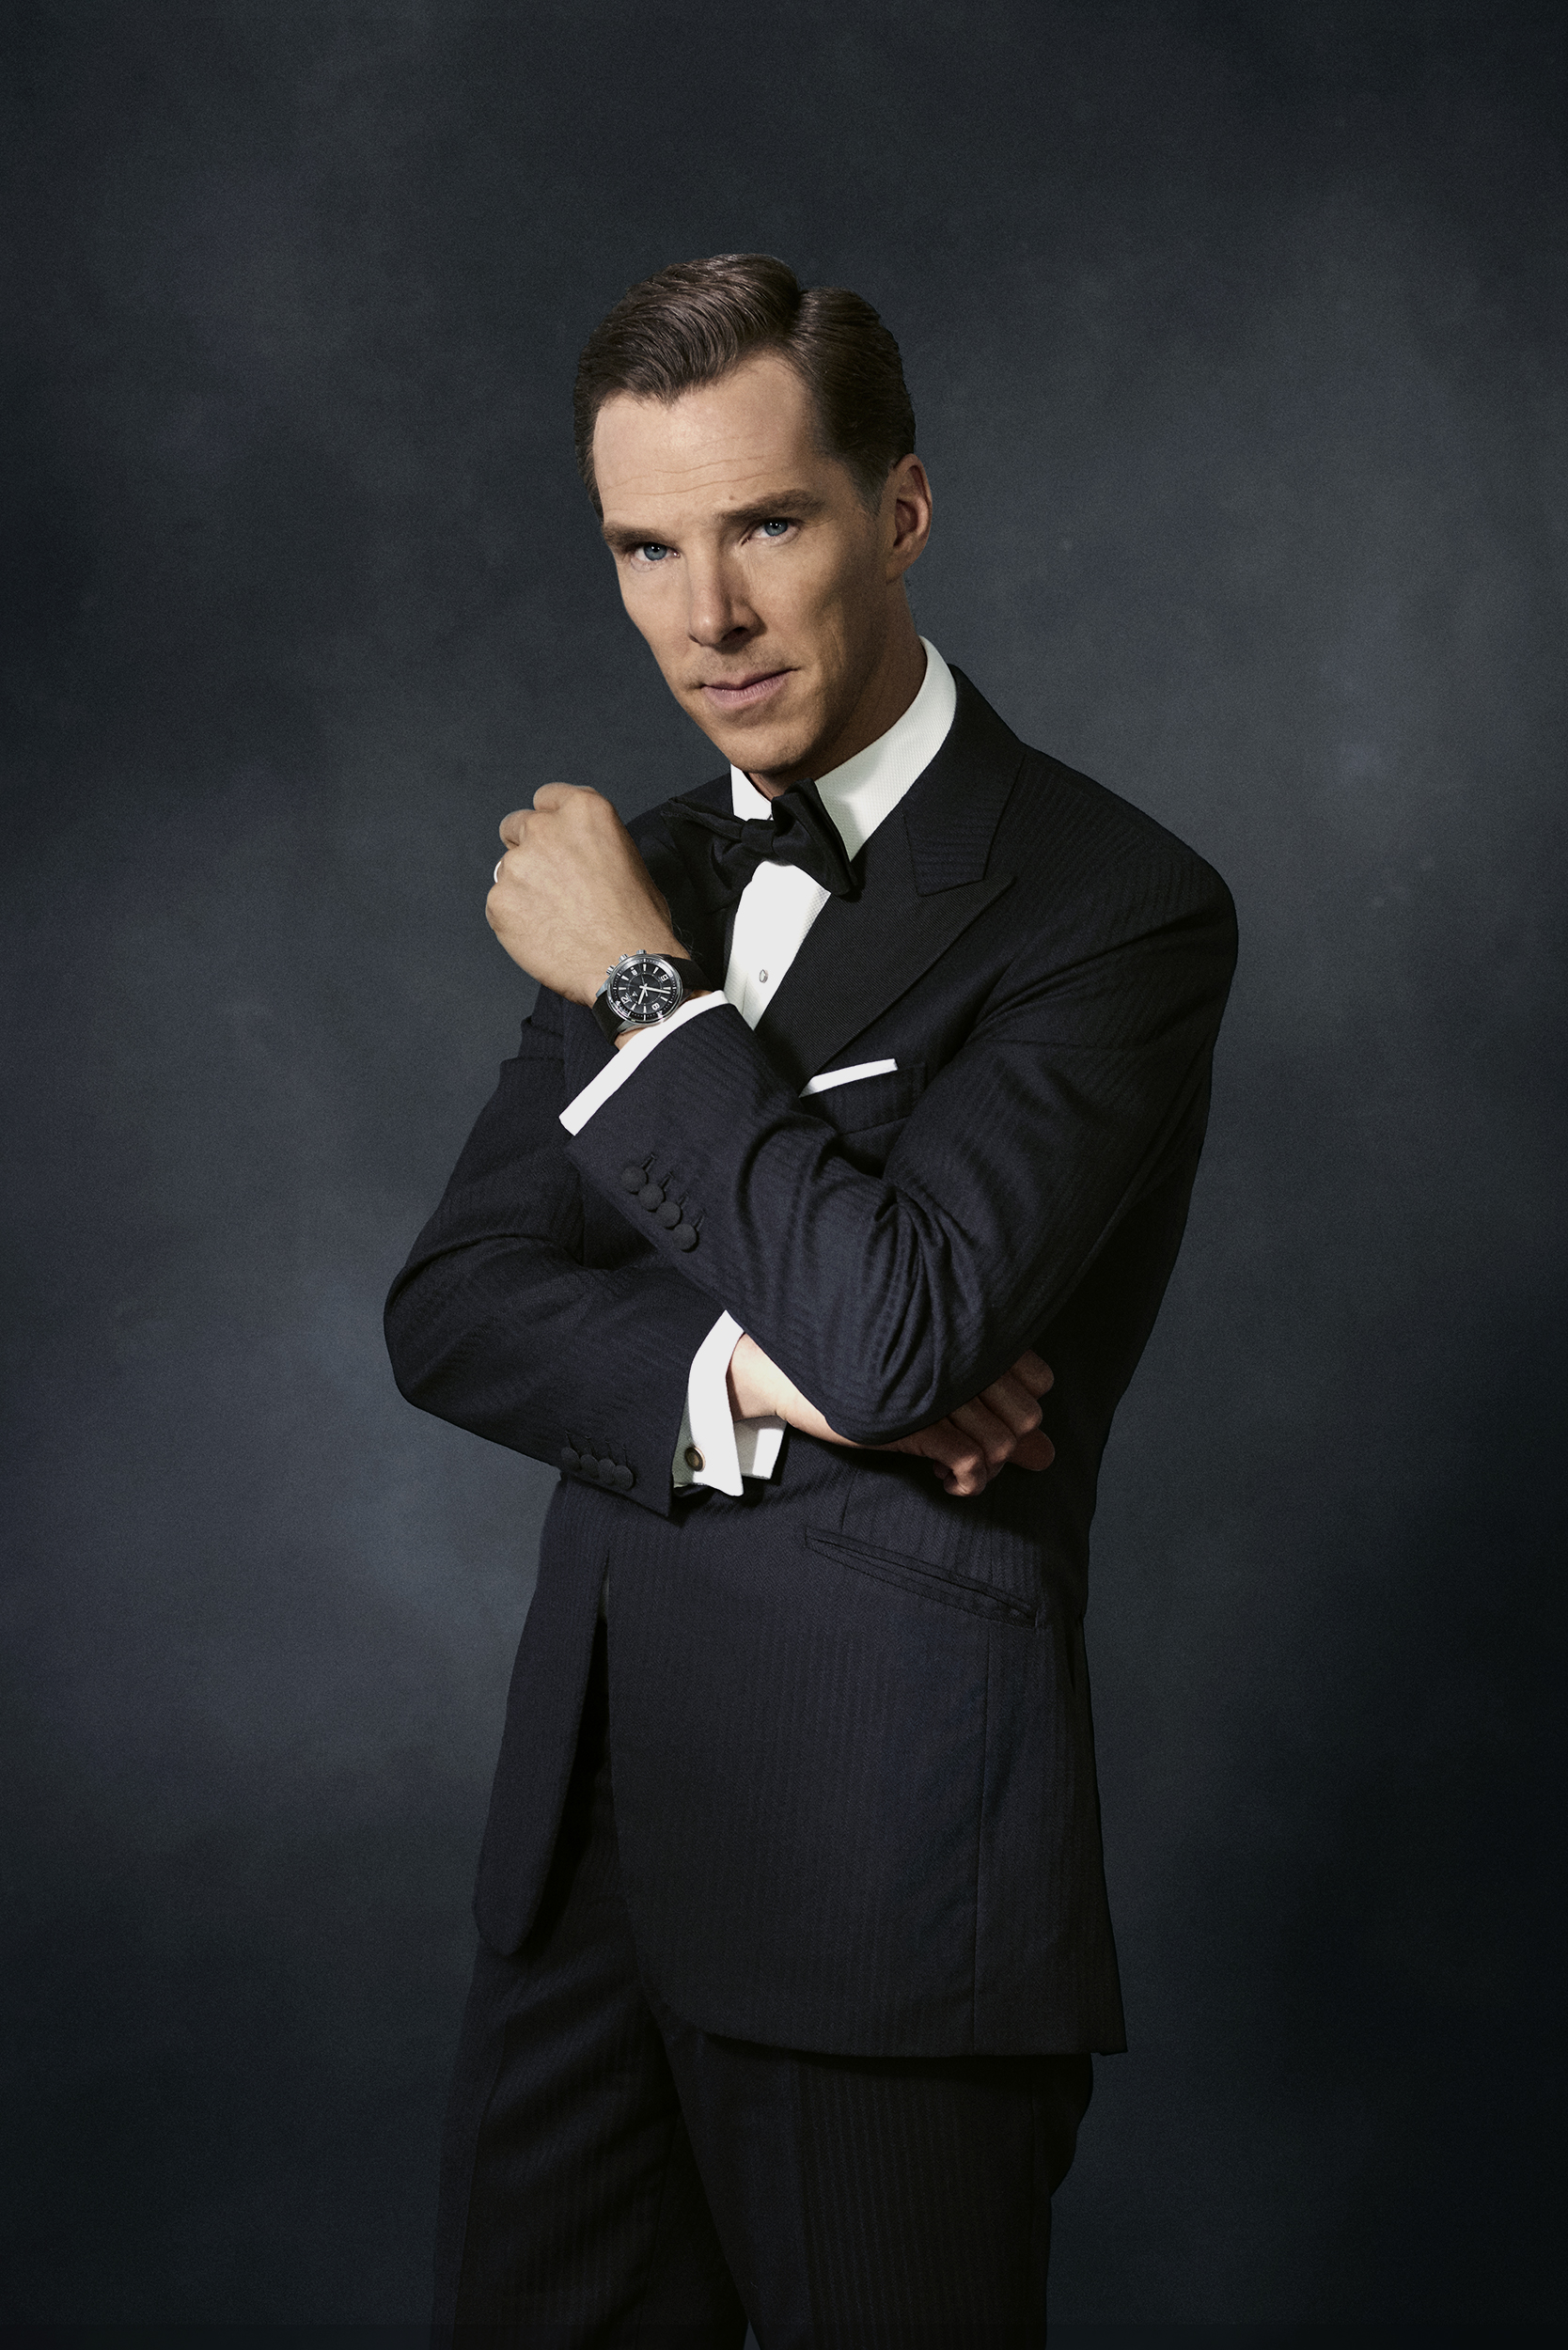 Benedict Cumberbatch_365_V02_POLARIS_OPTIONLow res.jpg